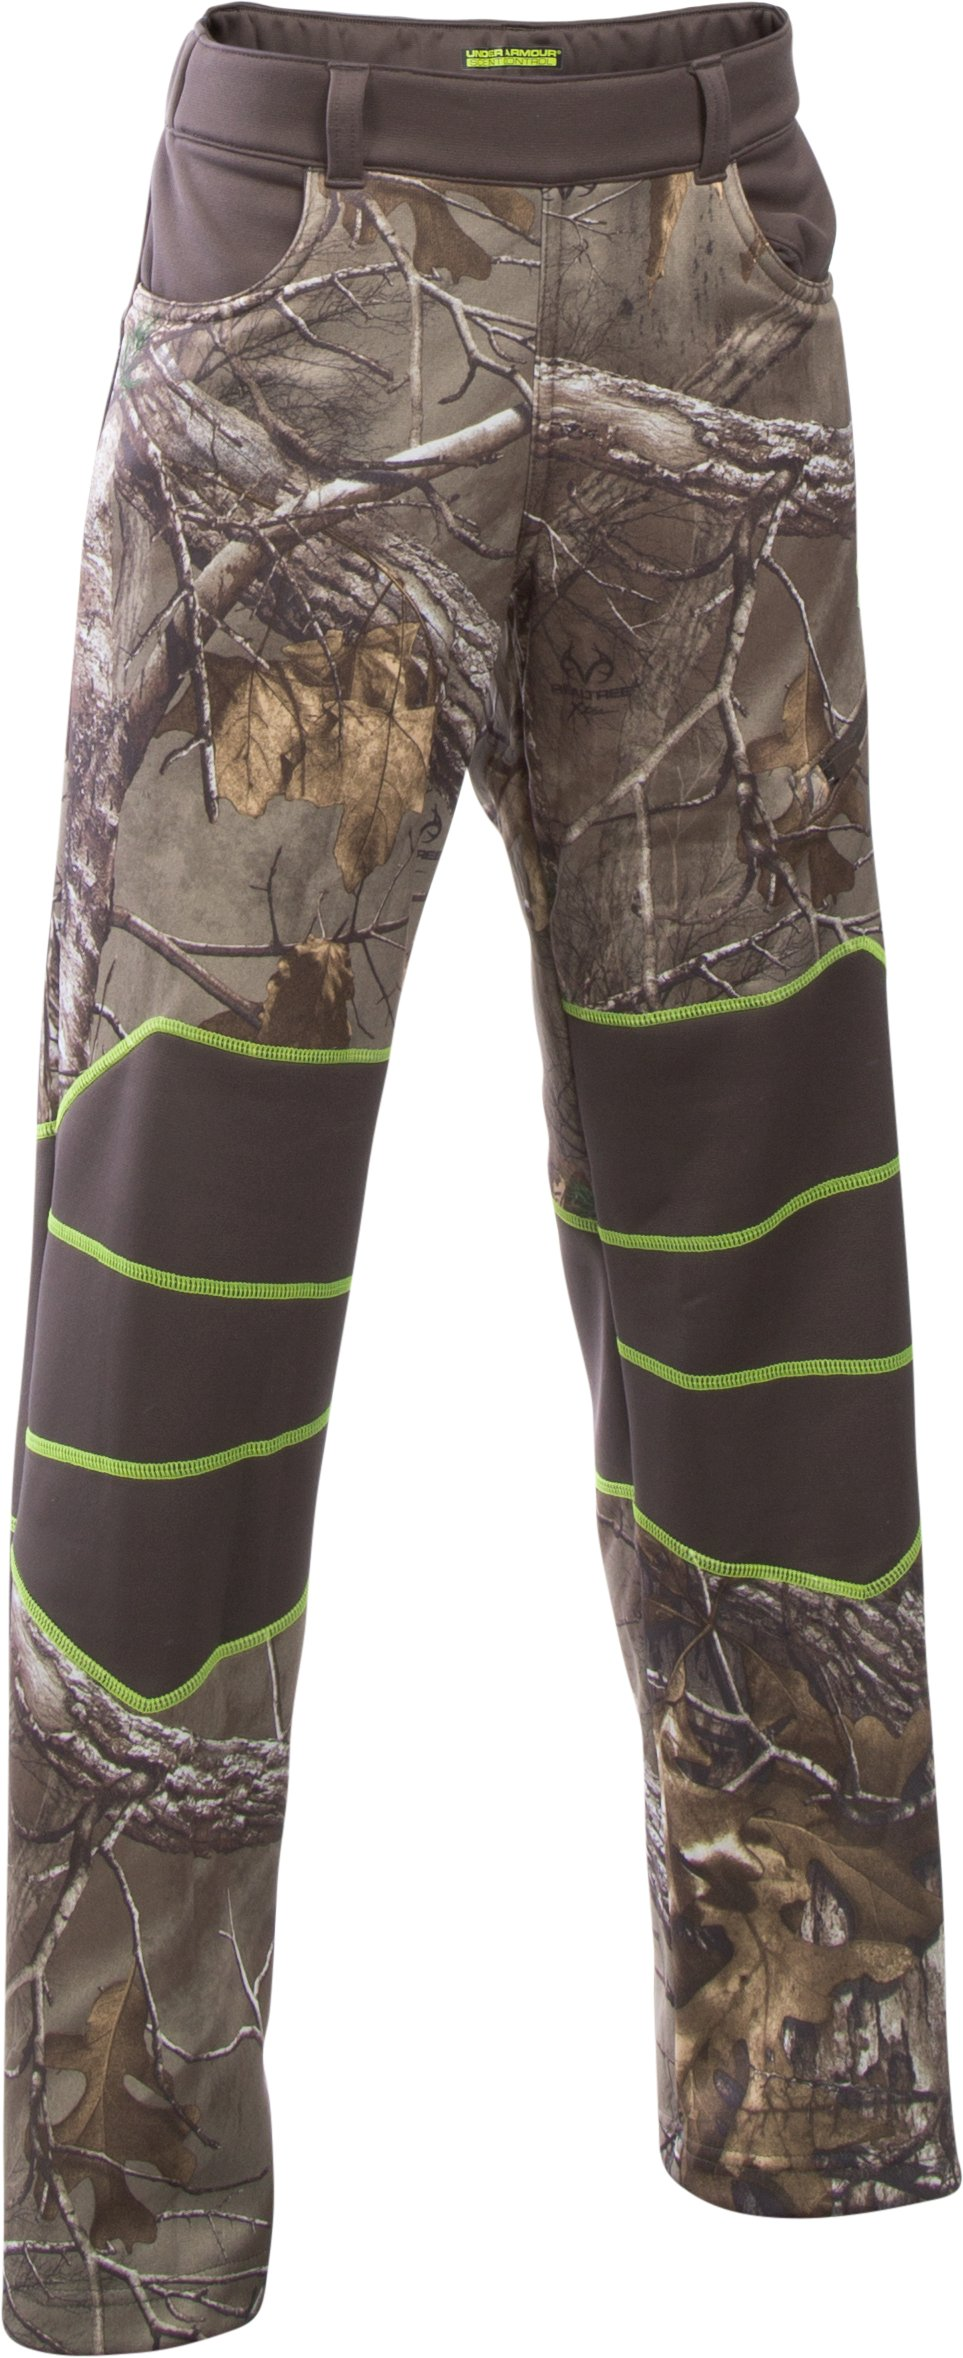 Boys' UA Scent Control Fleece Pants, REALTREE AP-XTRA, zoomed image